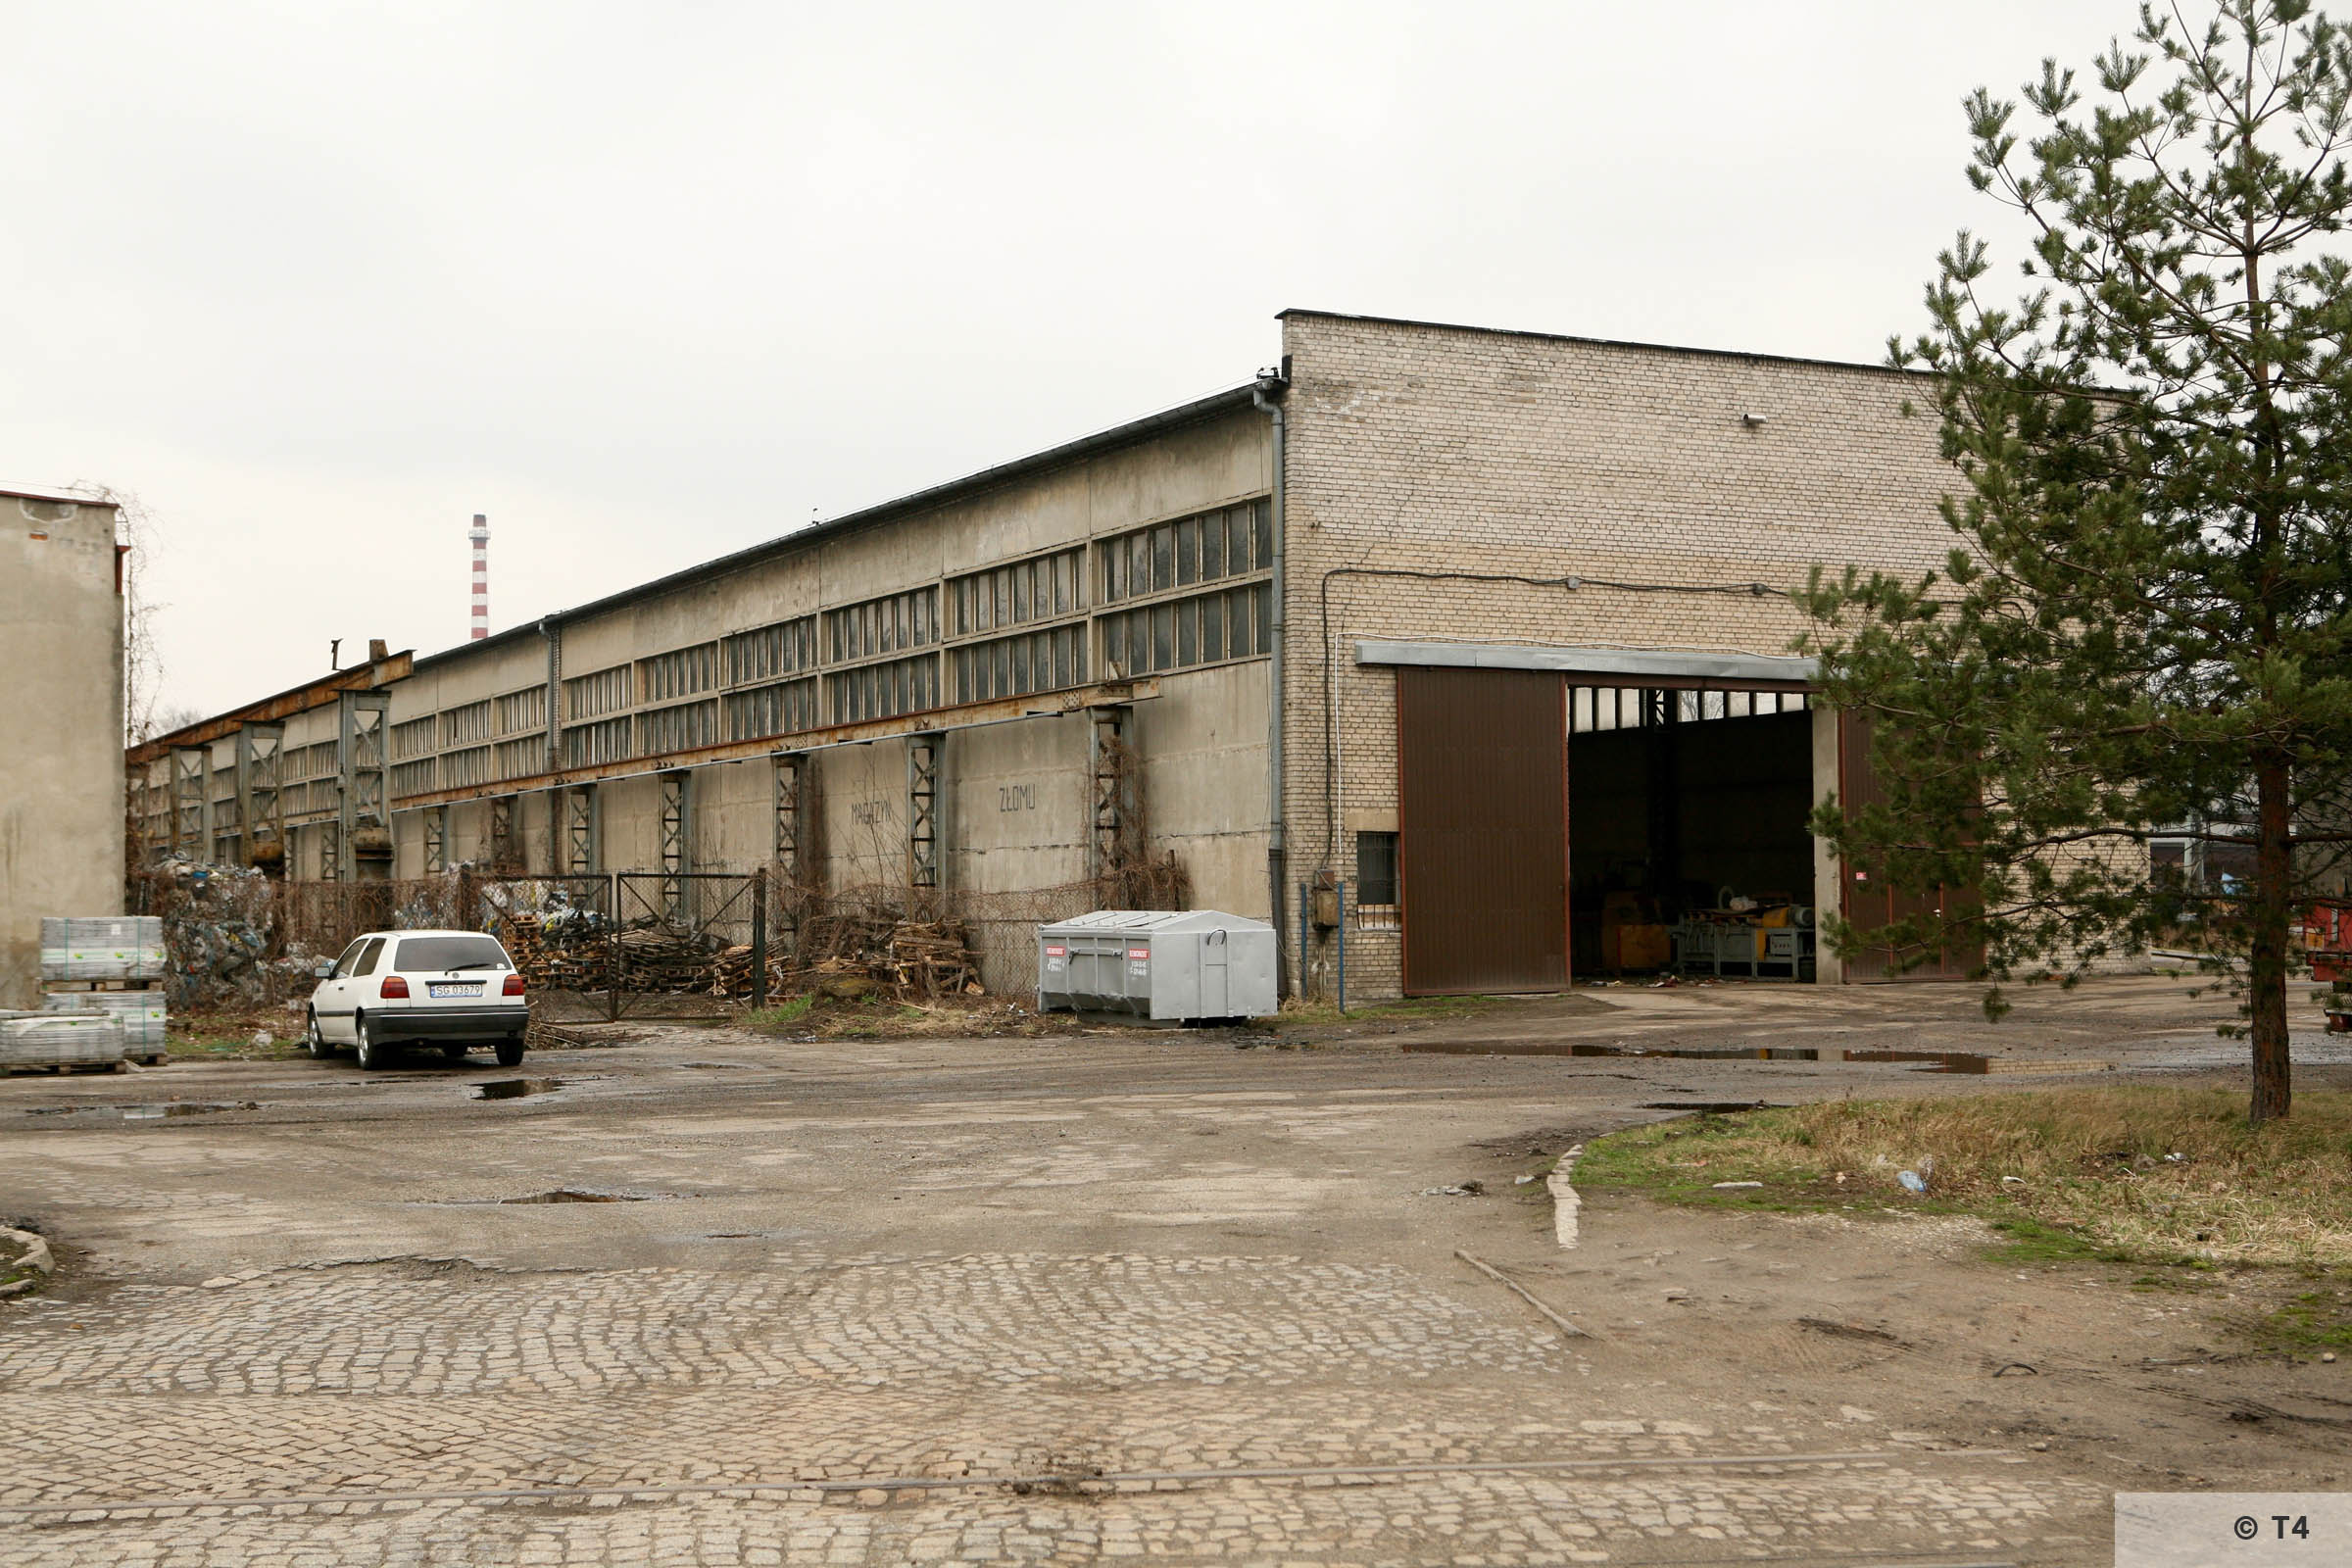 Workshops where prisoners worked. 2007 T4 4817